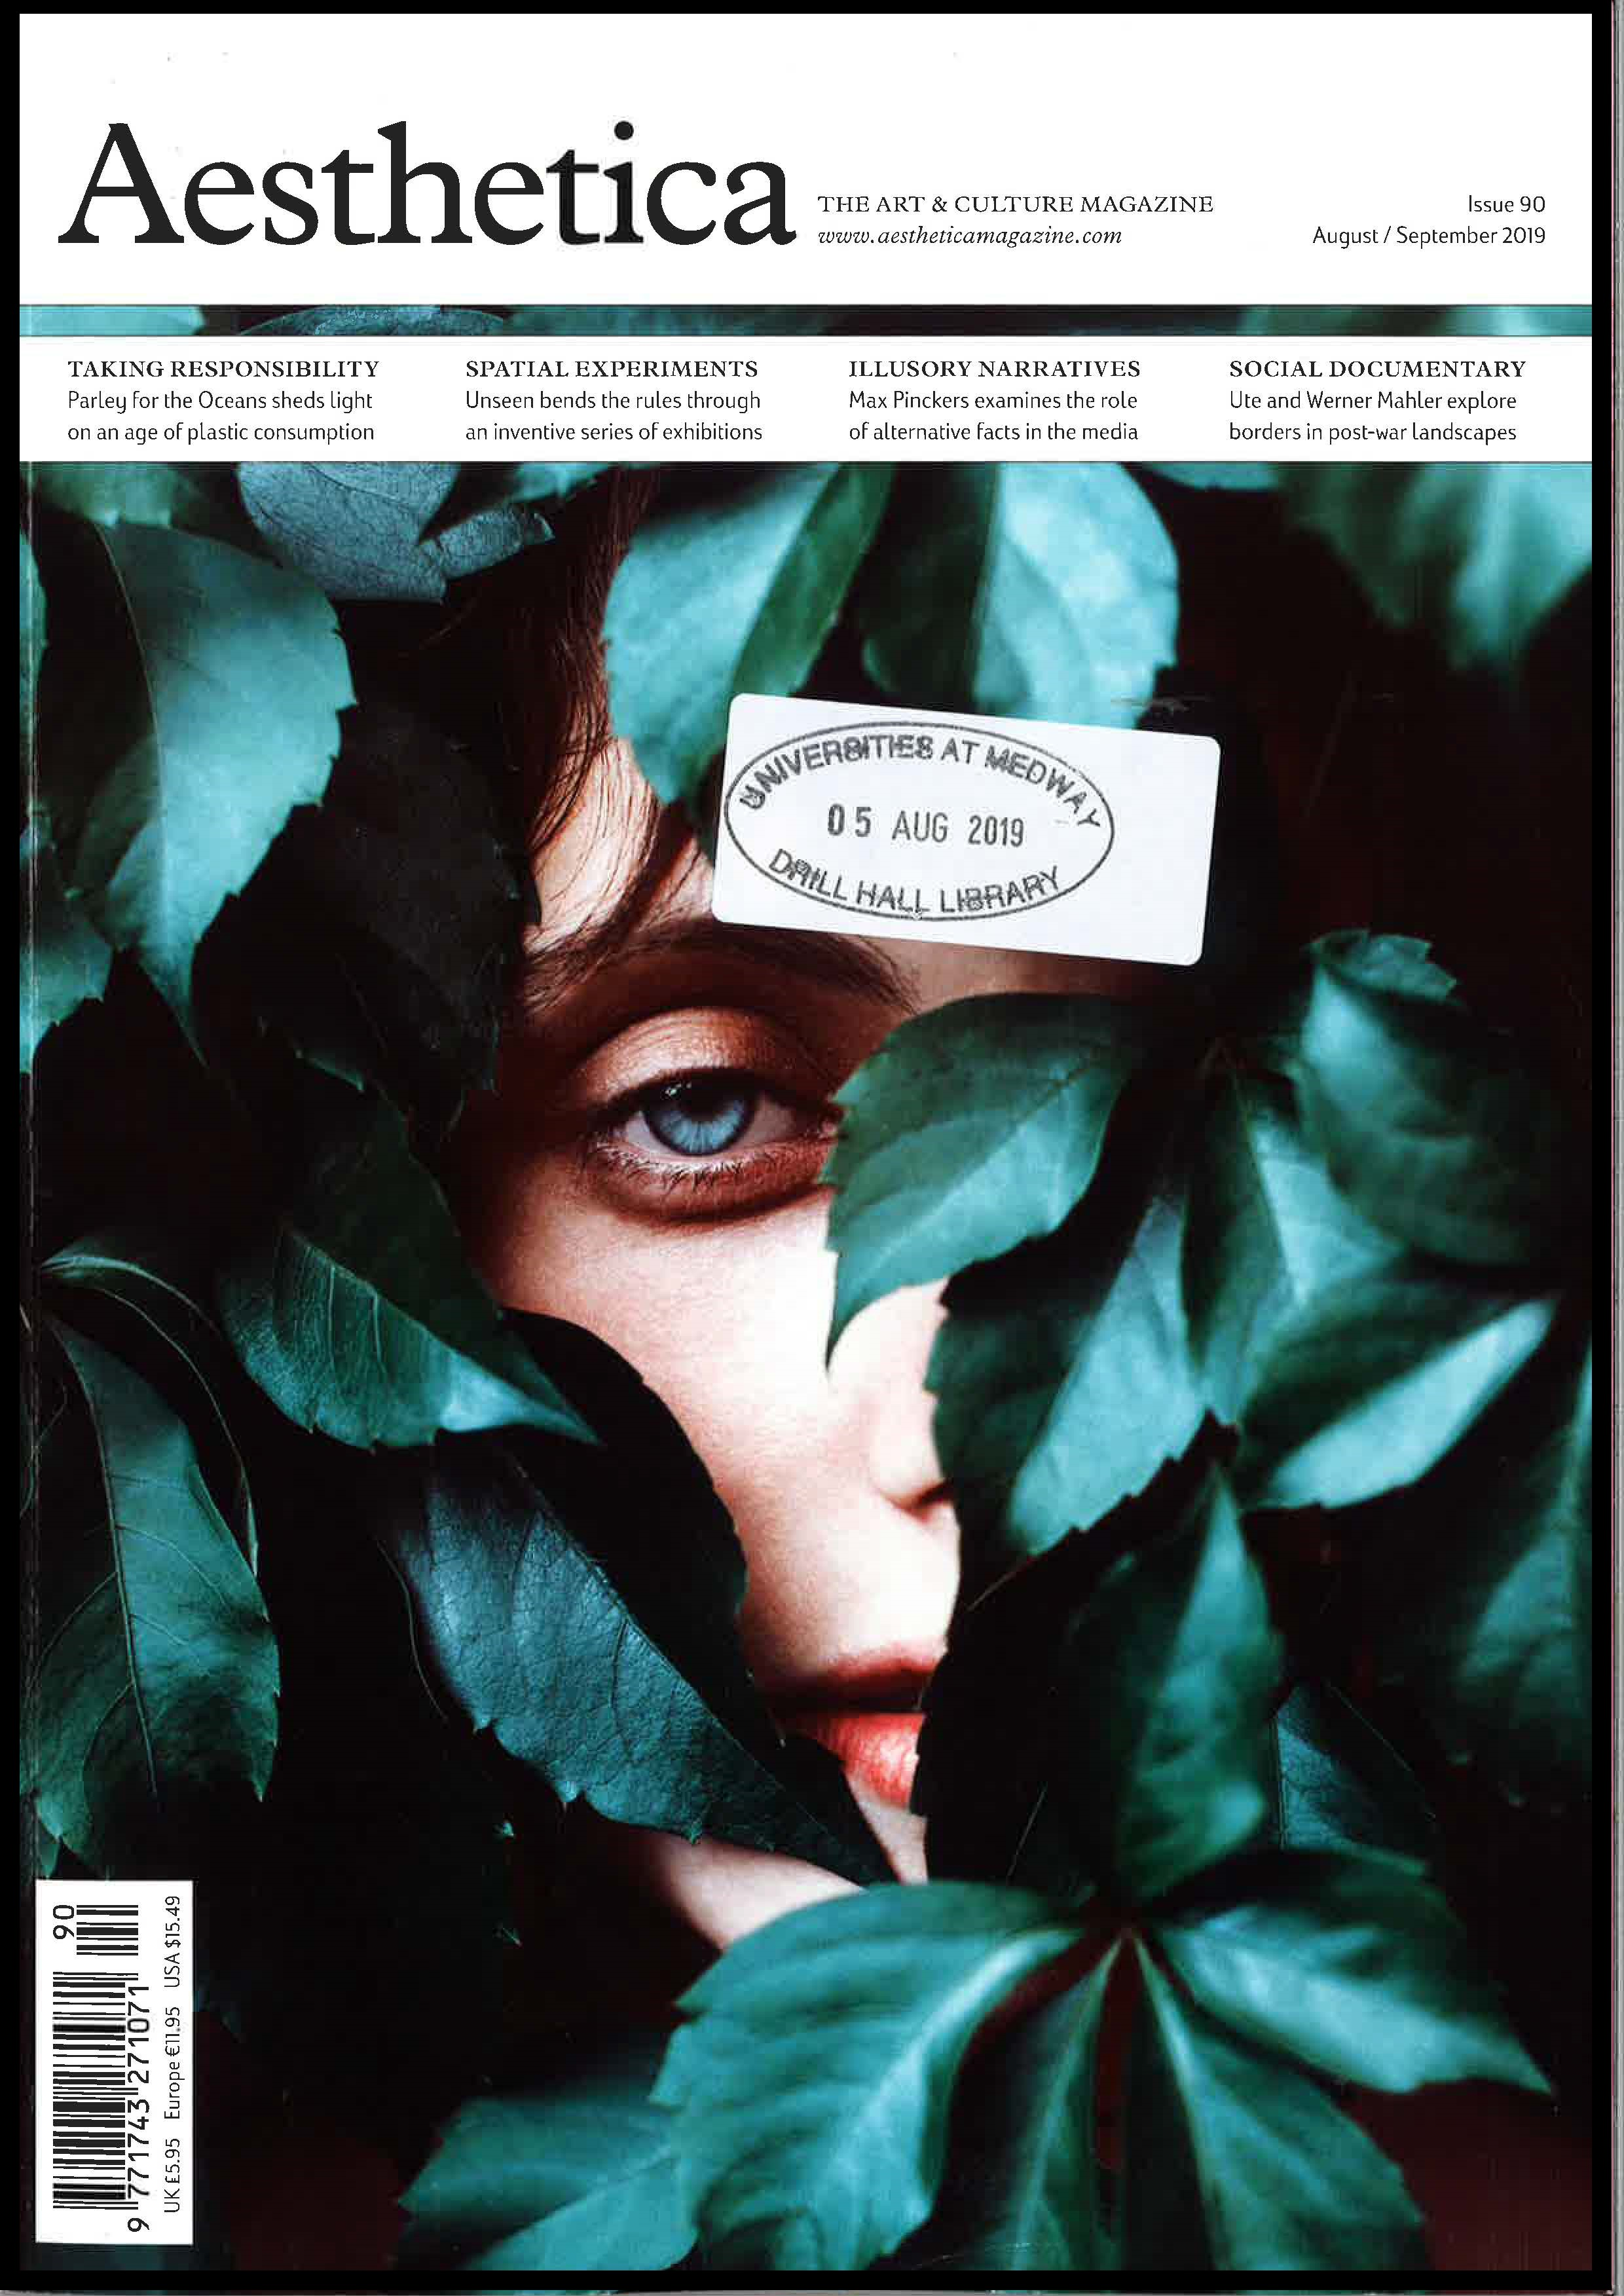 Cover of Aesthetica